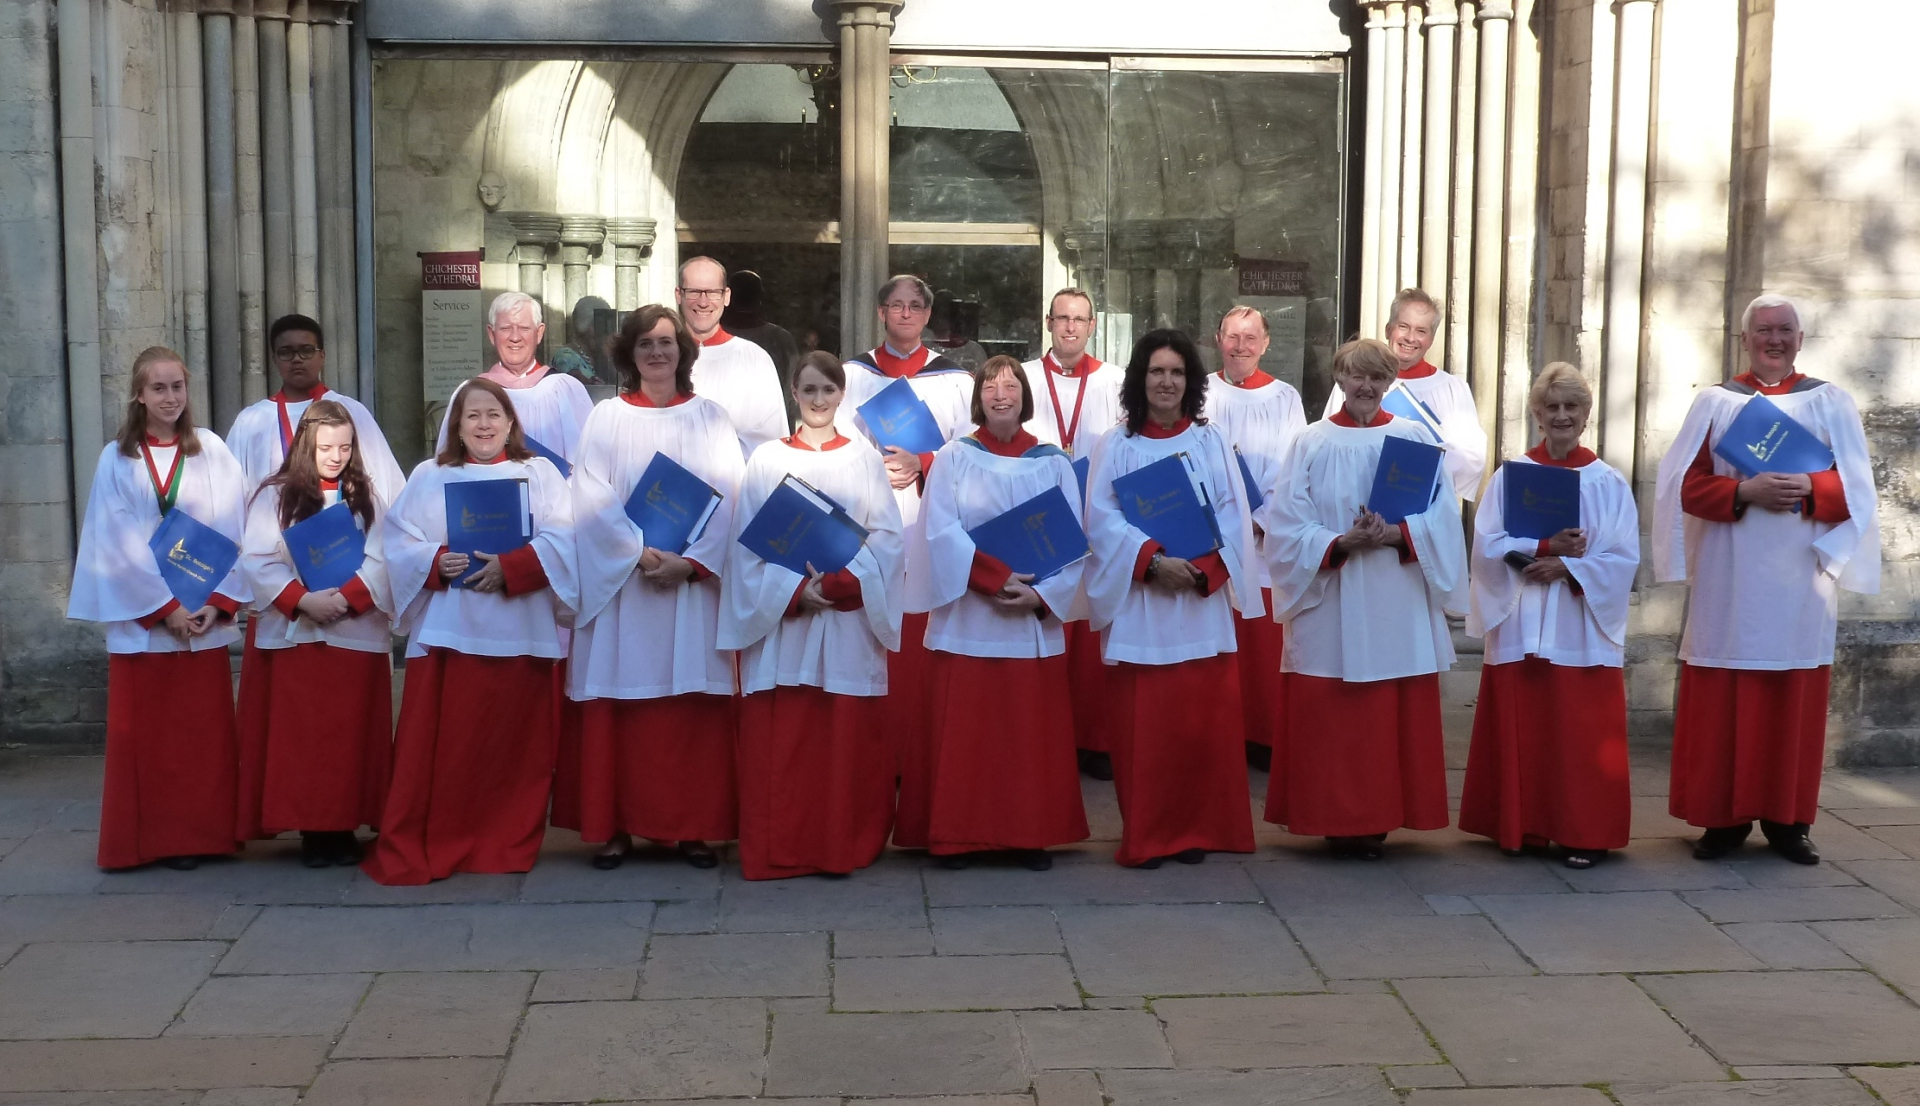 St. Botolph's, Heene choir at Chichester Cathedral, 8.8.15